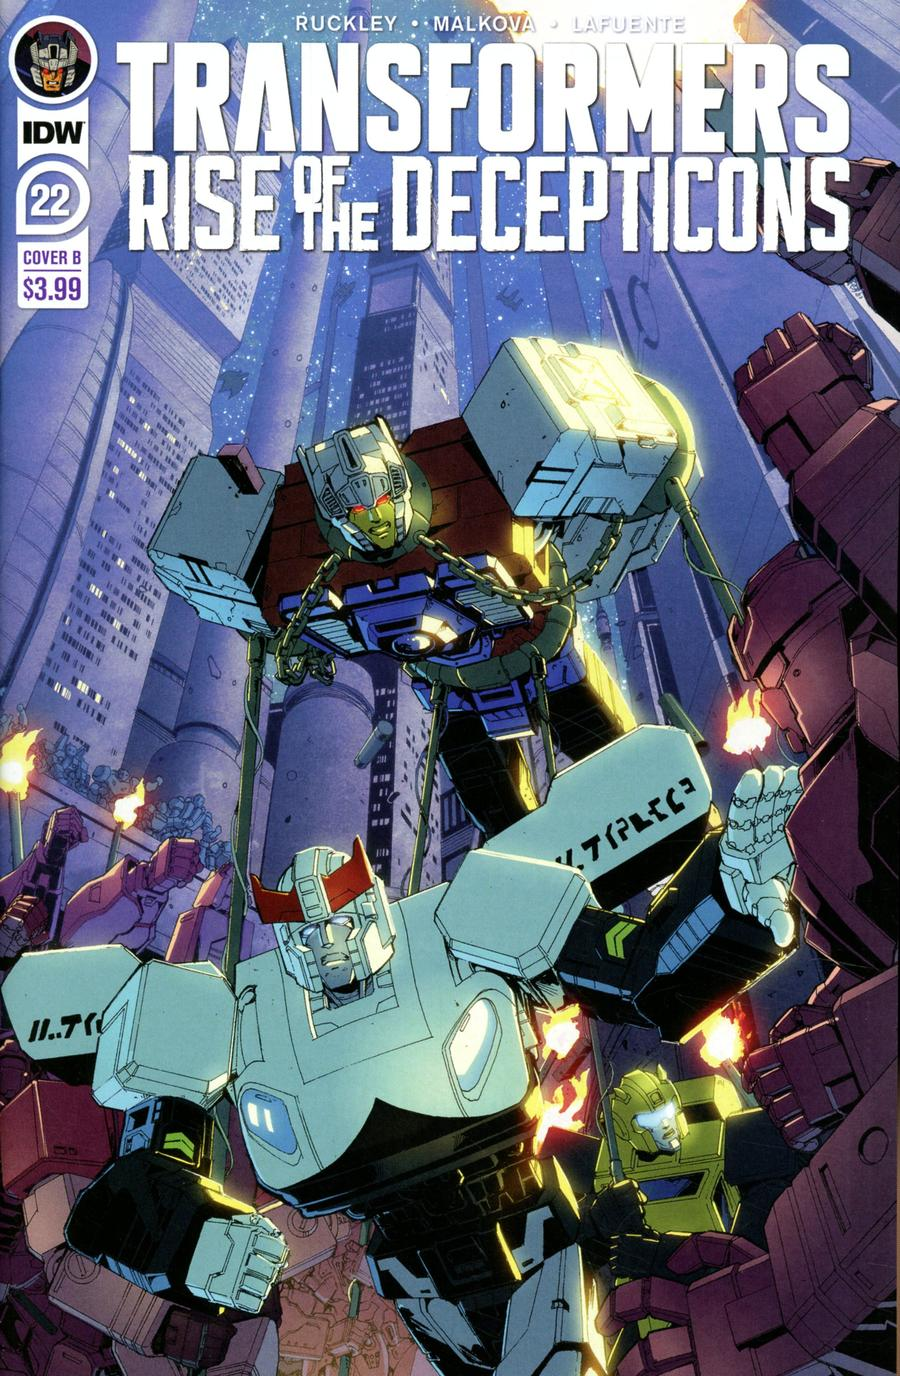 Transformers Vol 4 #22 Cover B Variant Andrew Griffith Cover